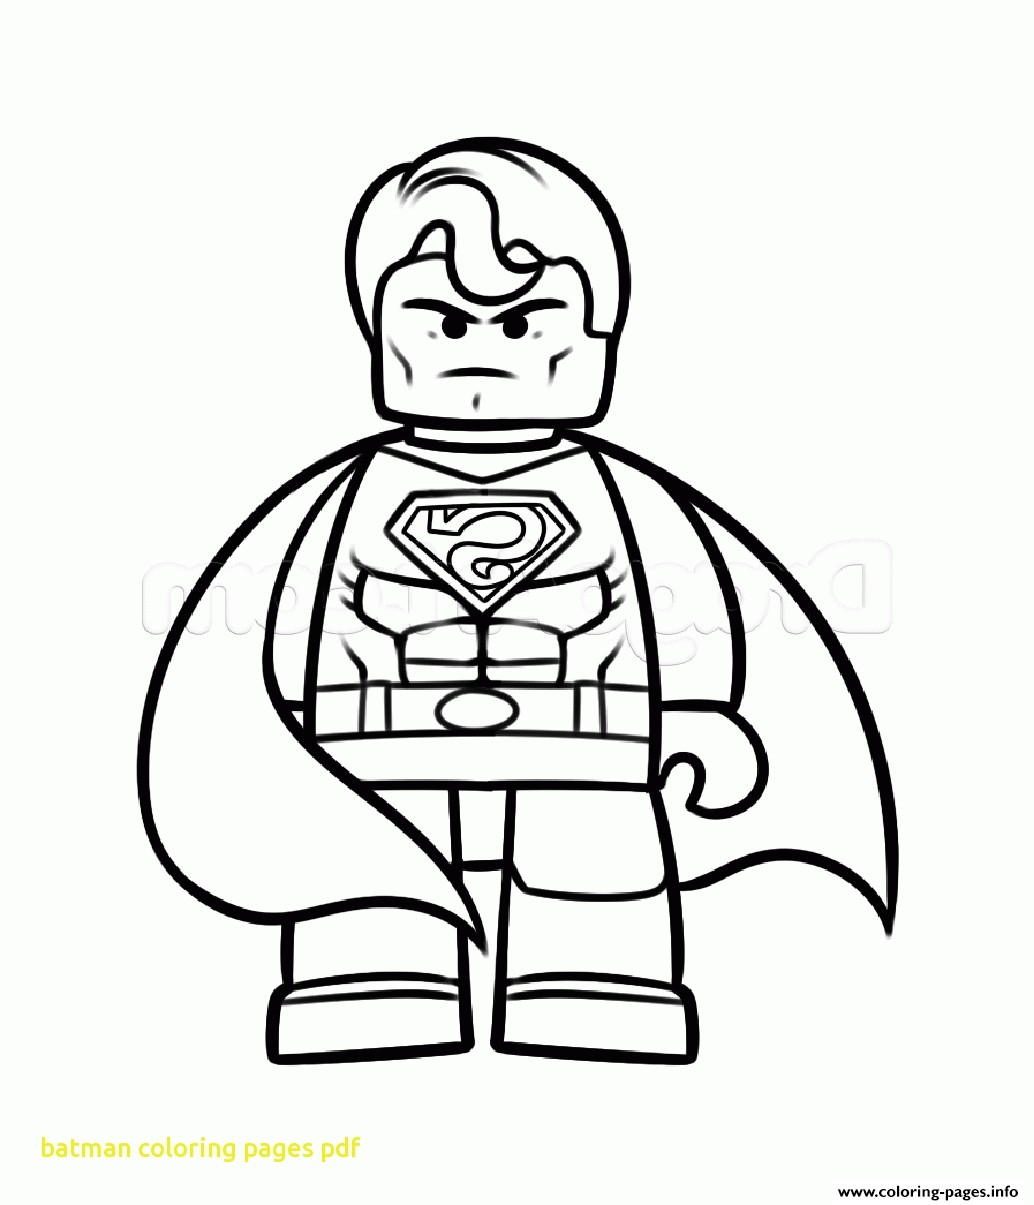 1034x1205 Batman Vs Superman Coloring Pages Gallery Free Coloring Pages